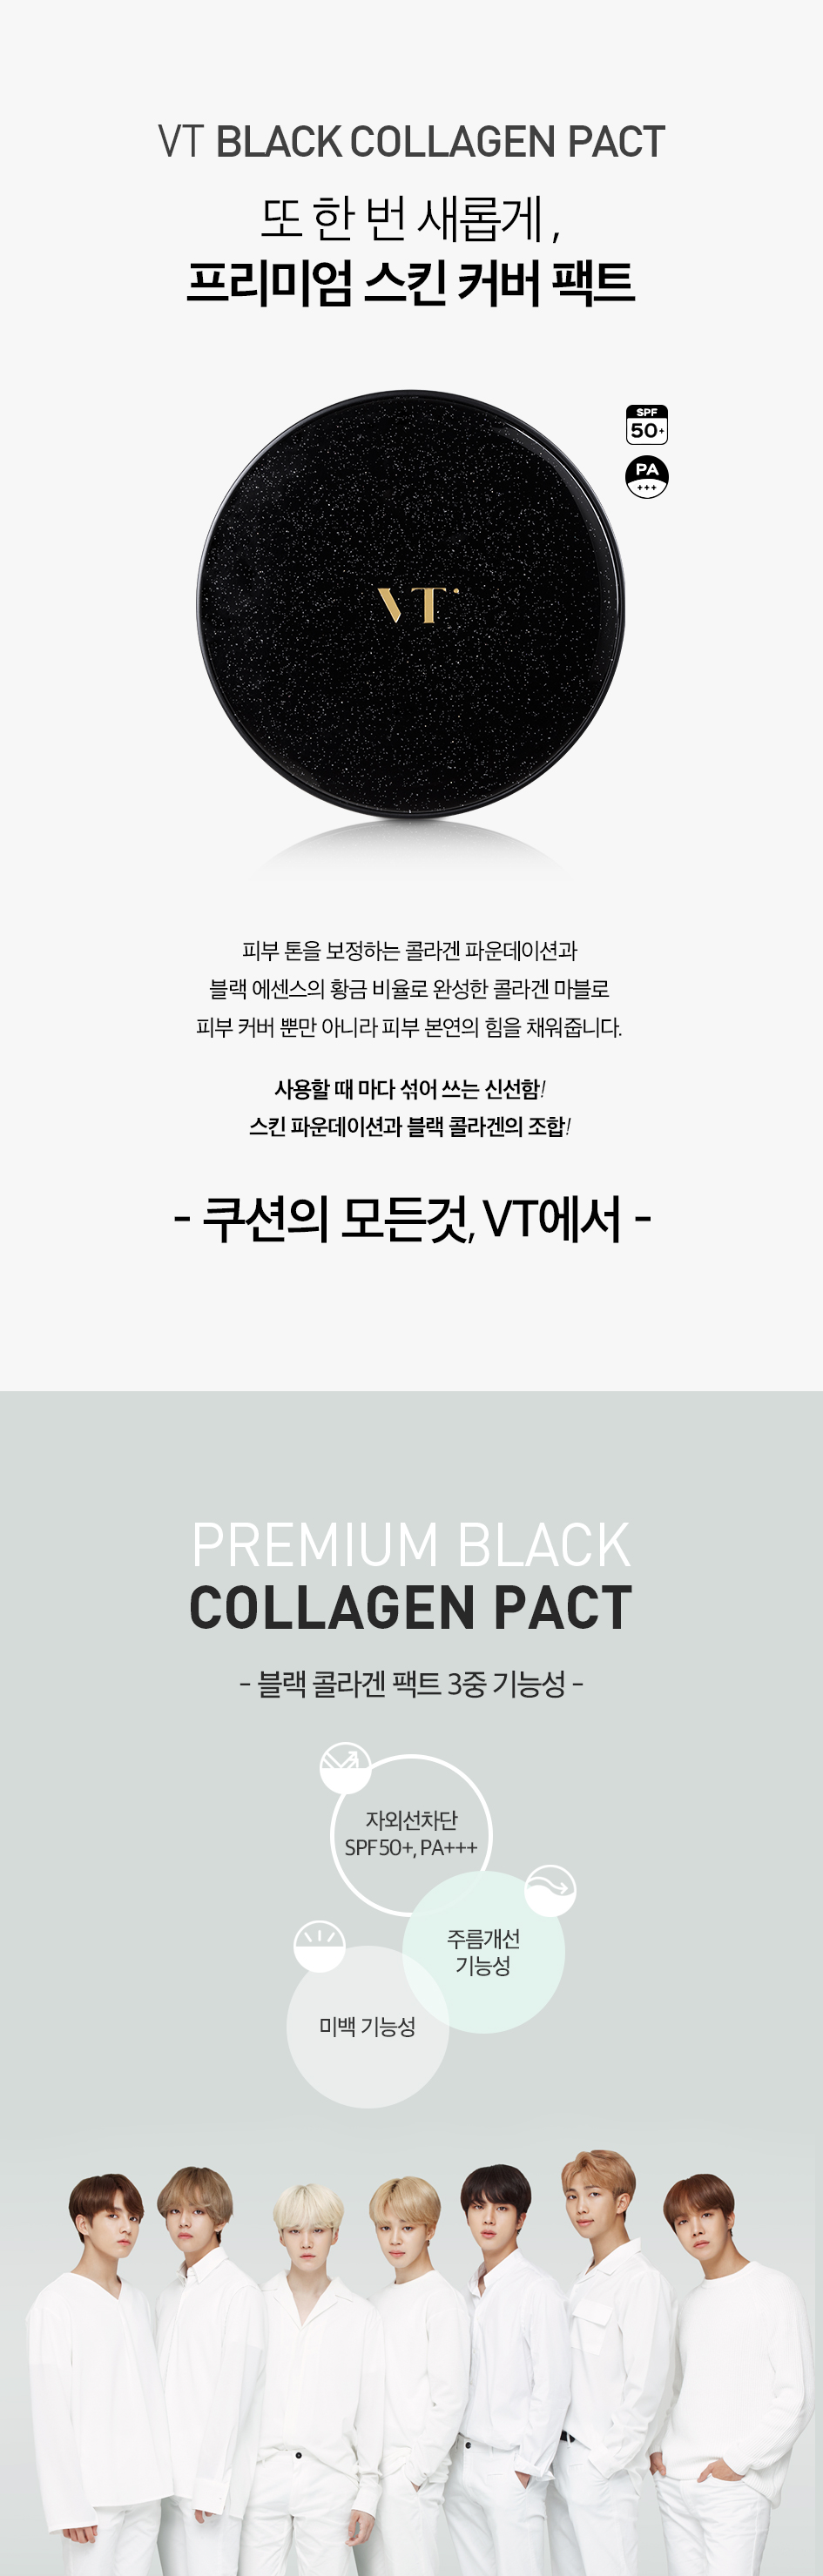 VT Black Collagen Pact Black Pearl